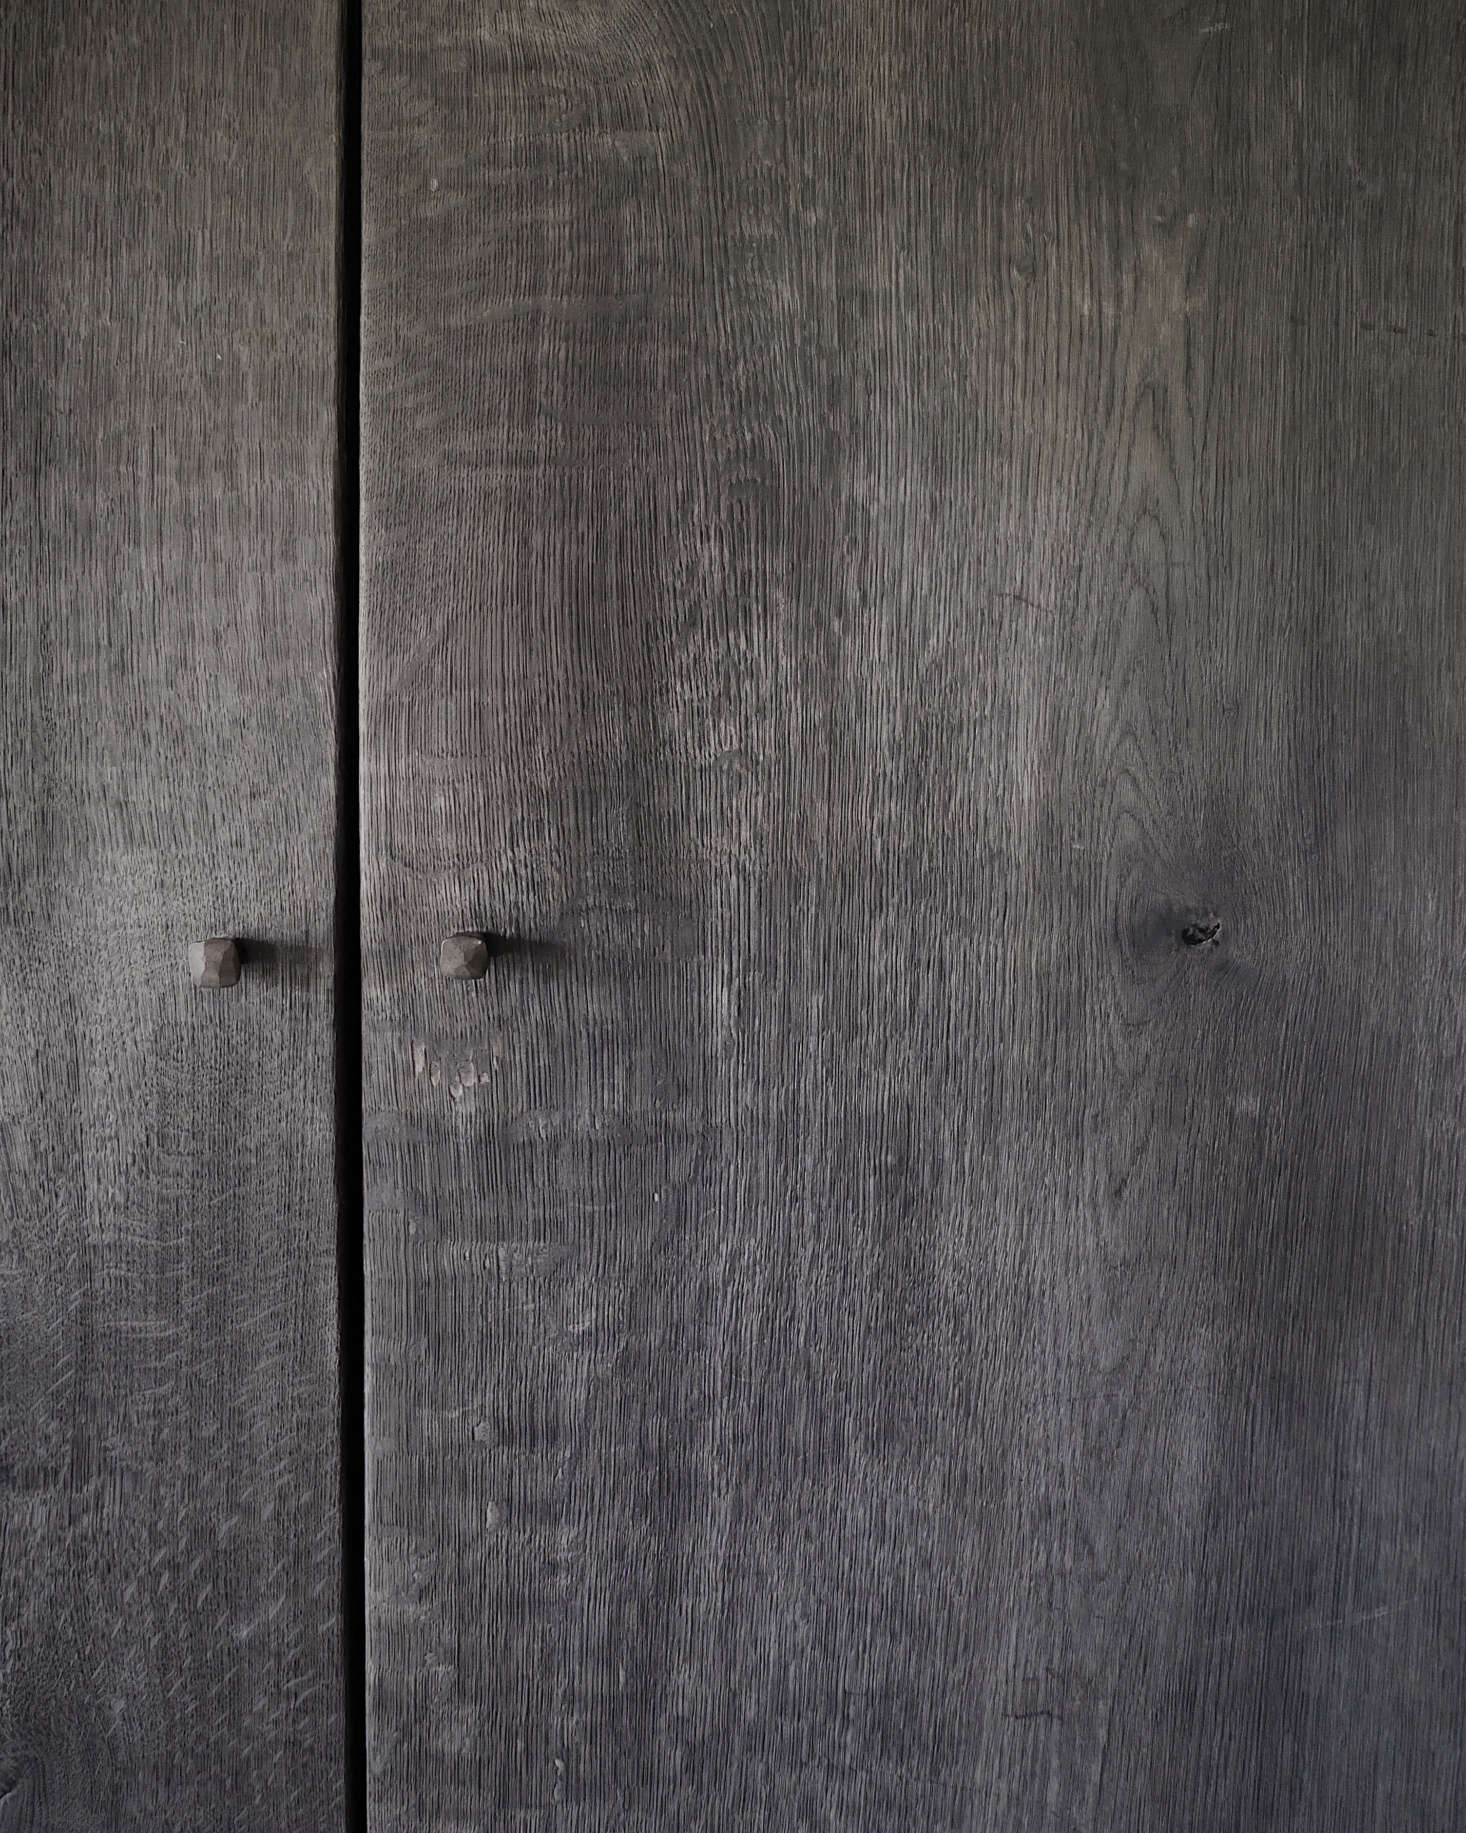 787025f28f Hand-forged nails serve as knobs on the bedroom wardrobes made by Belgian  designer